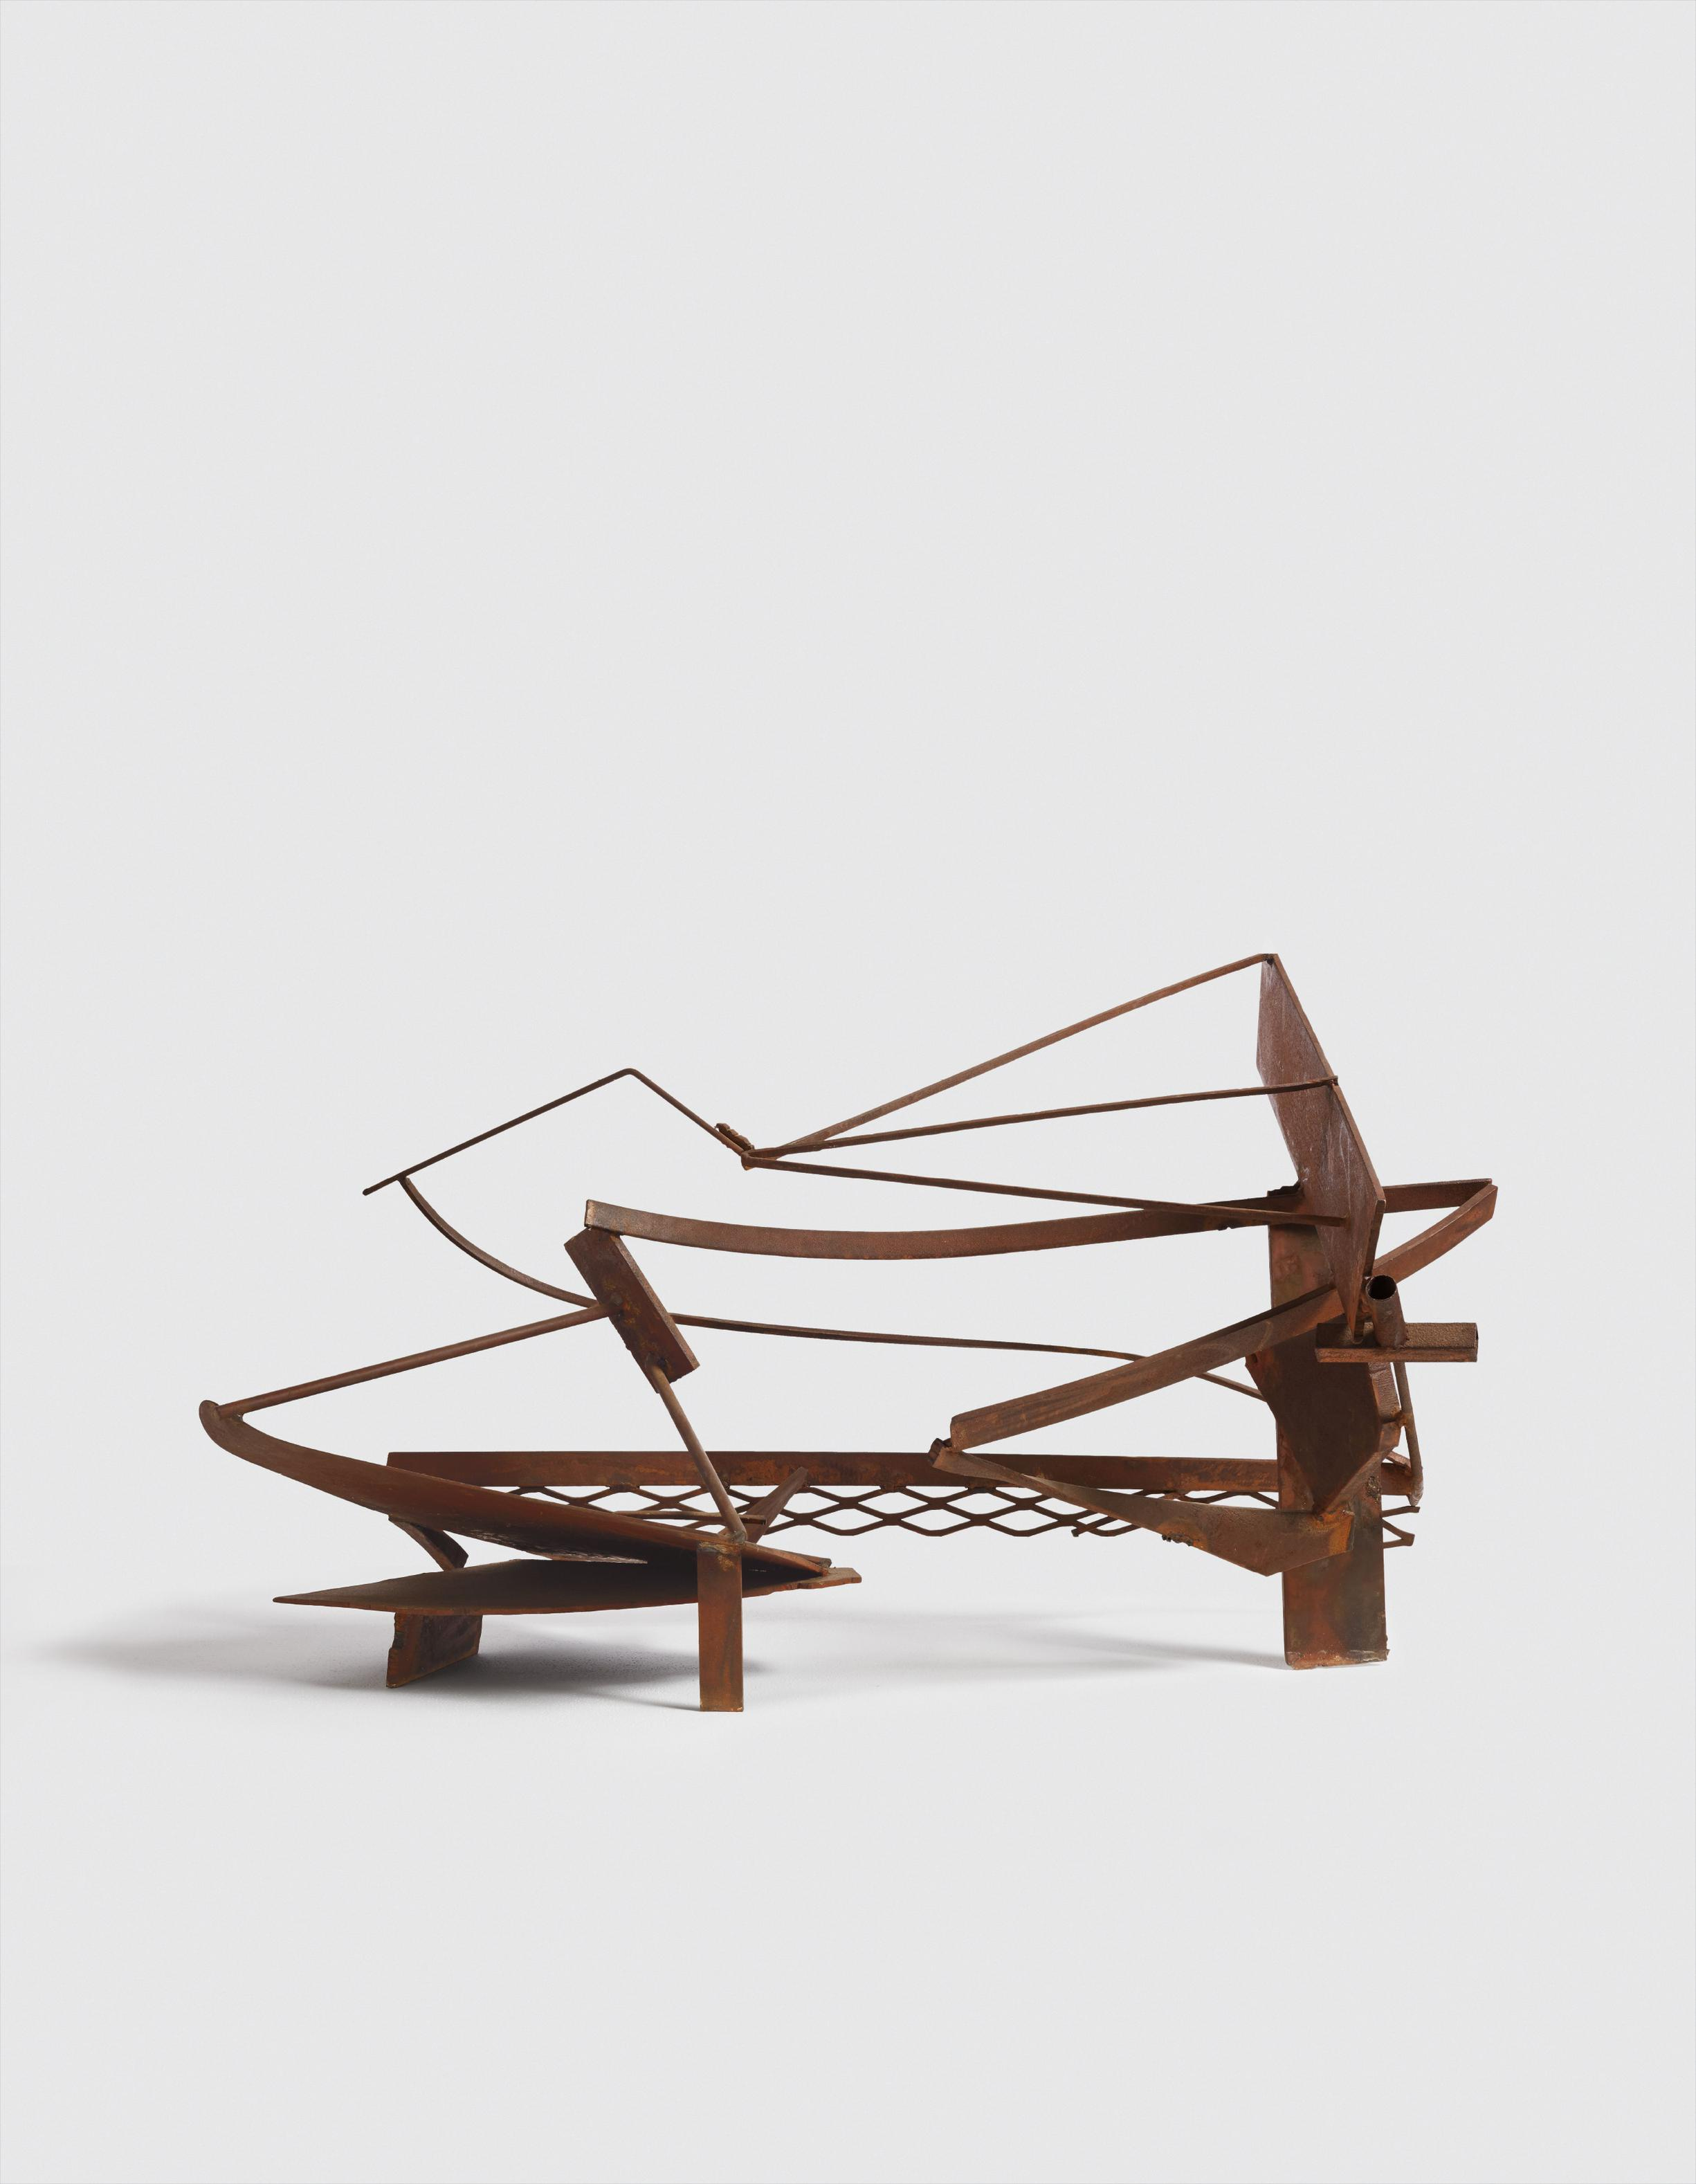 Sir Anthony Caro - Table Piece Ccccvii-1978